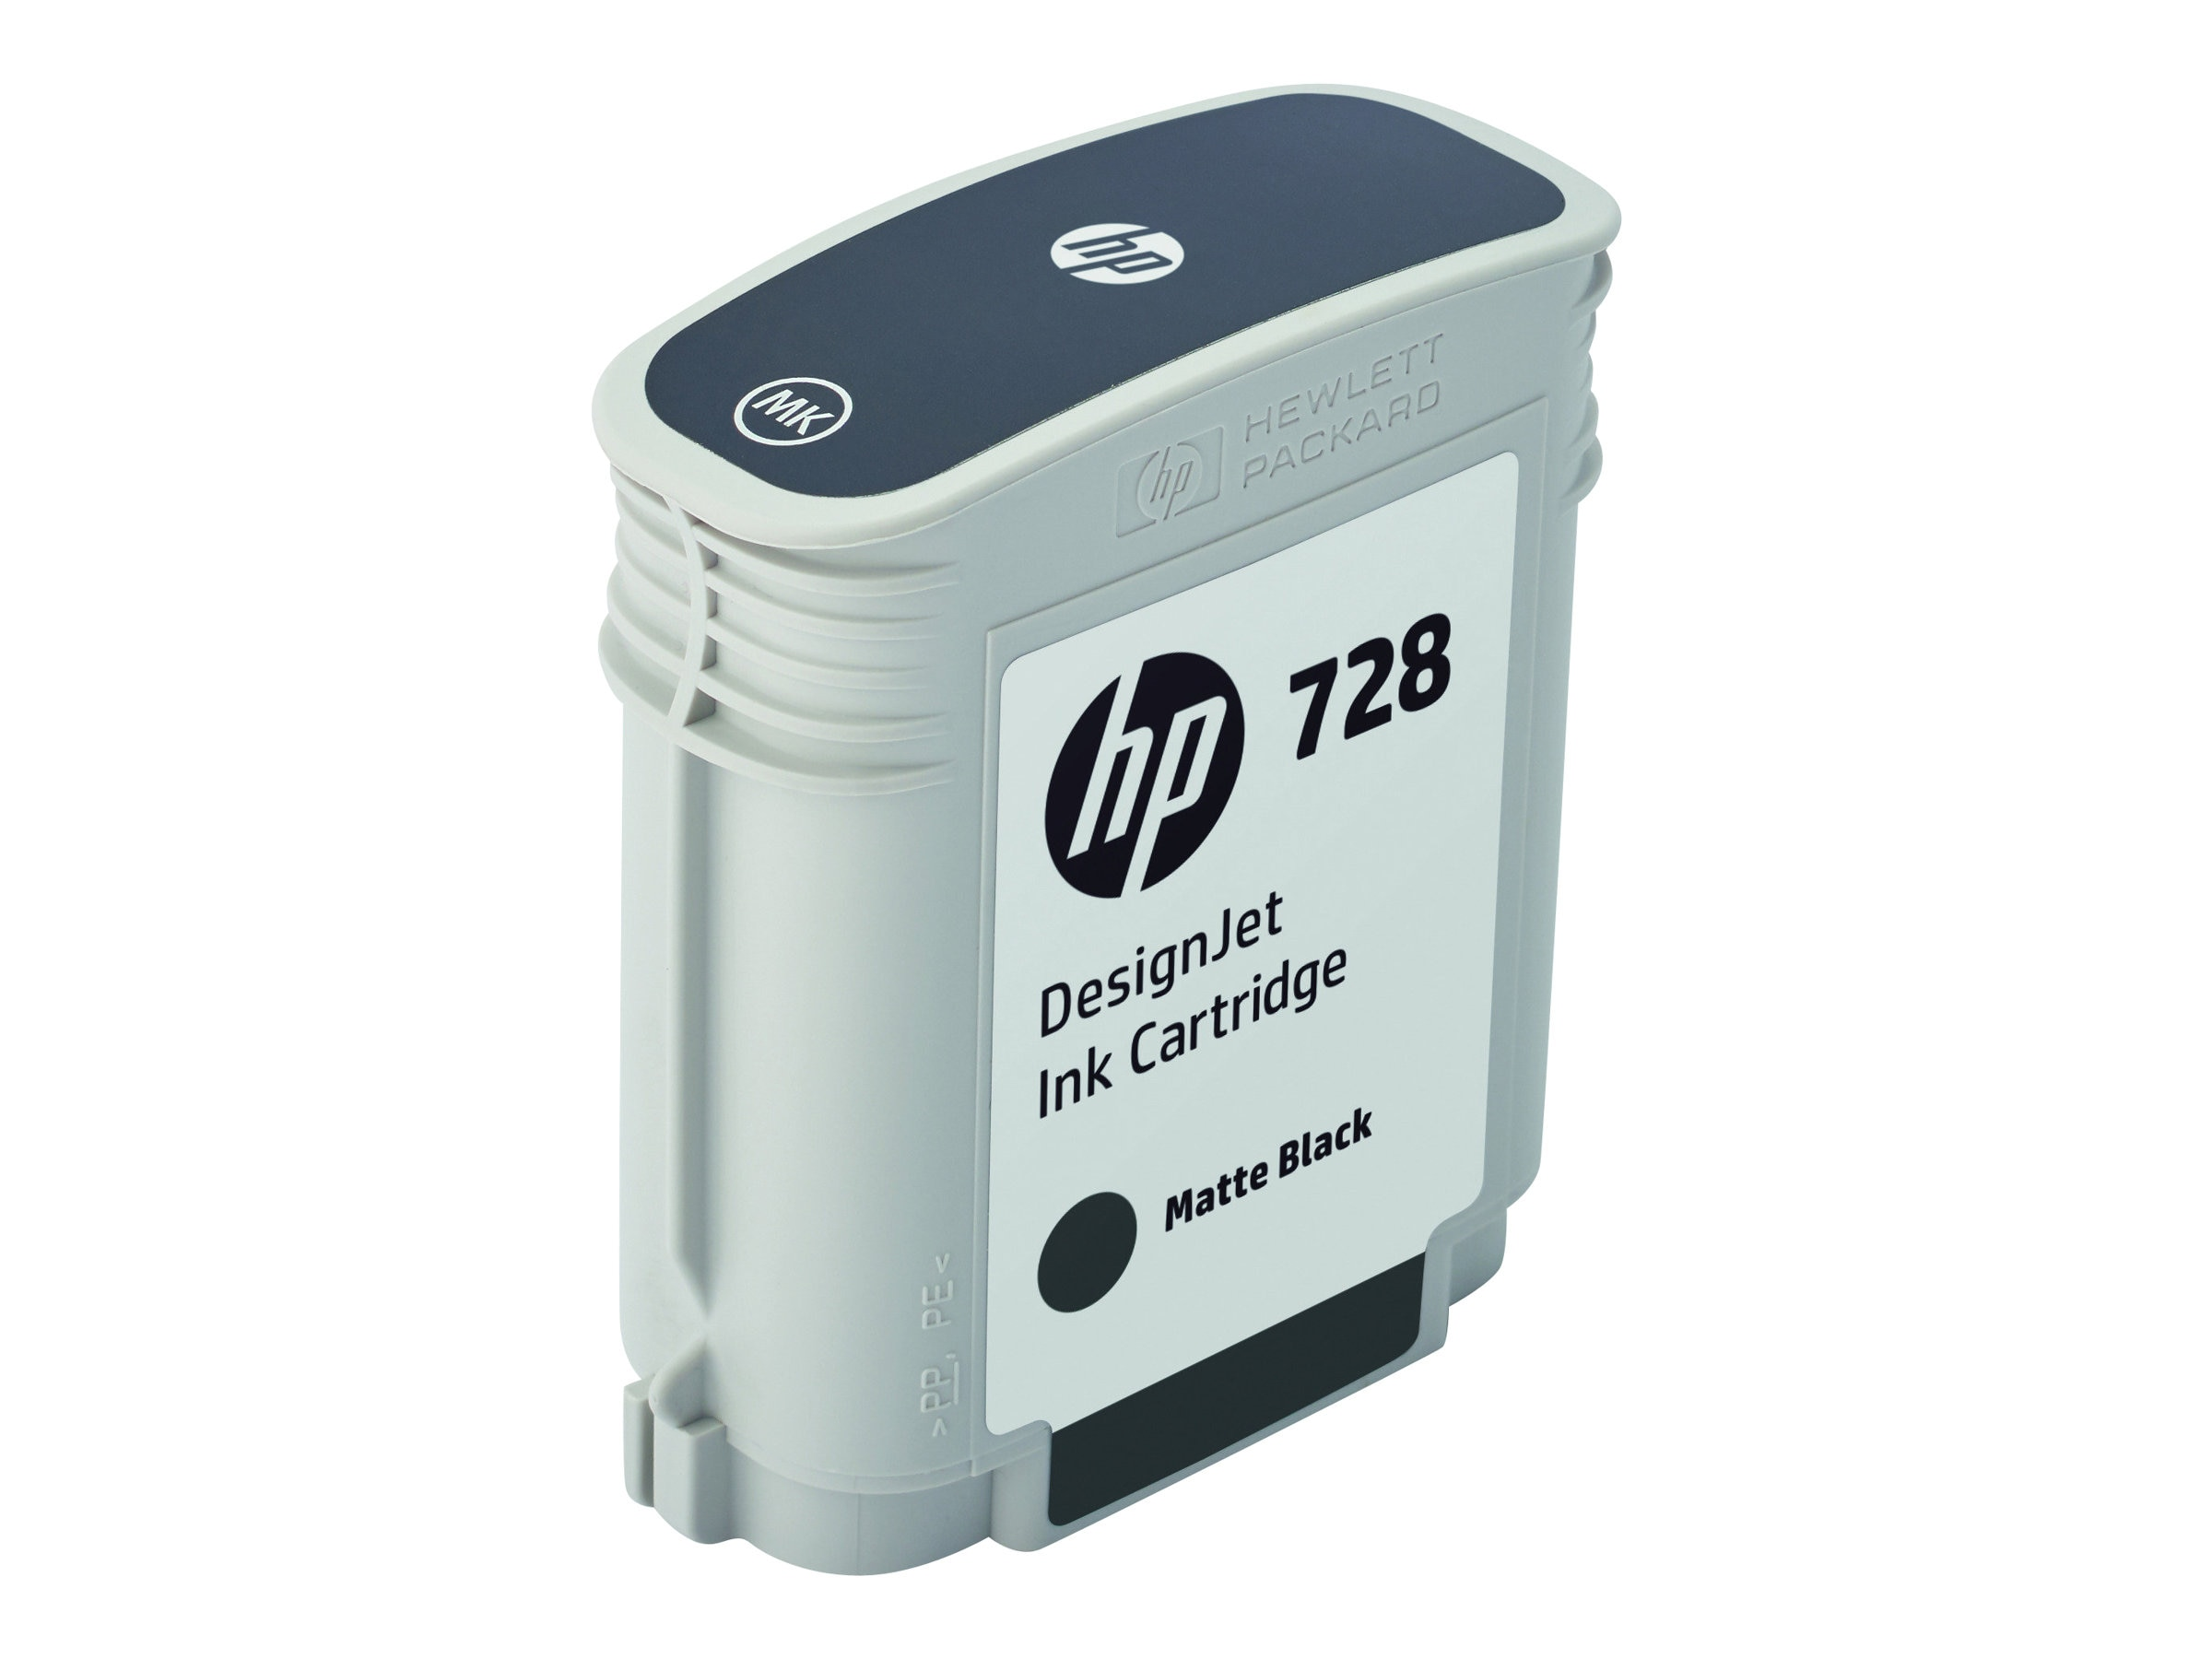 HP 728 (F9J64A) 69ml Matte Black Designjet Ink Cartridge for HP DesignJet T730 & T830 Series